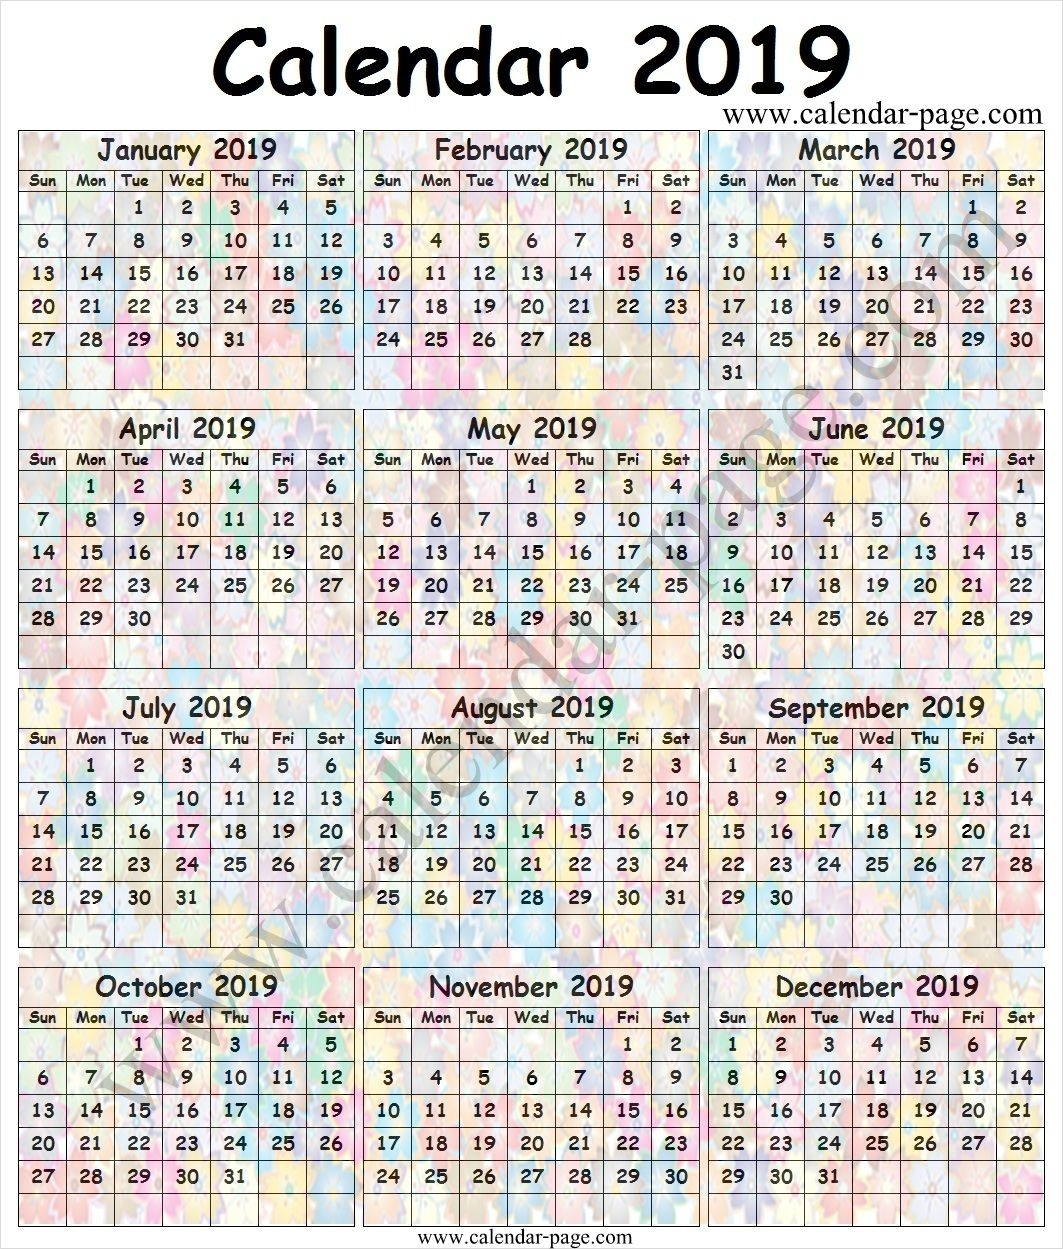 Tamil Monthly Calendar 2019 | Calendar, Calendar 2019 Yearly